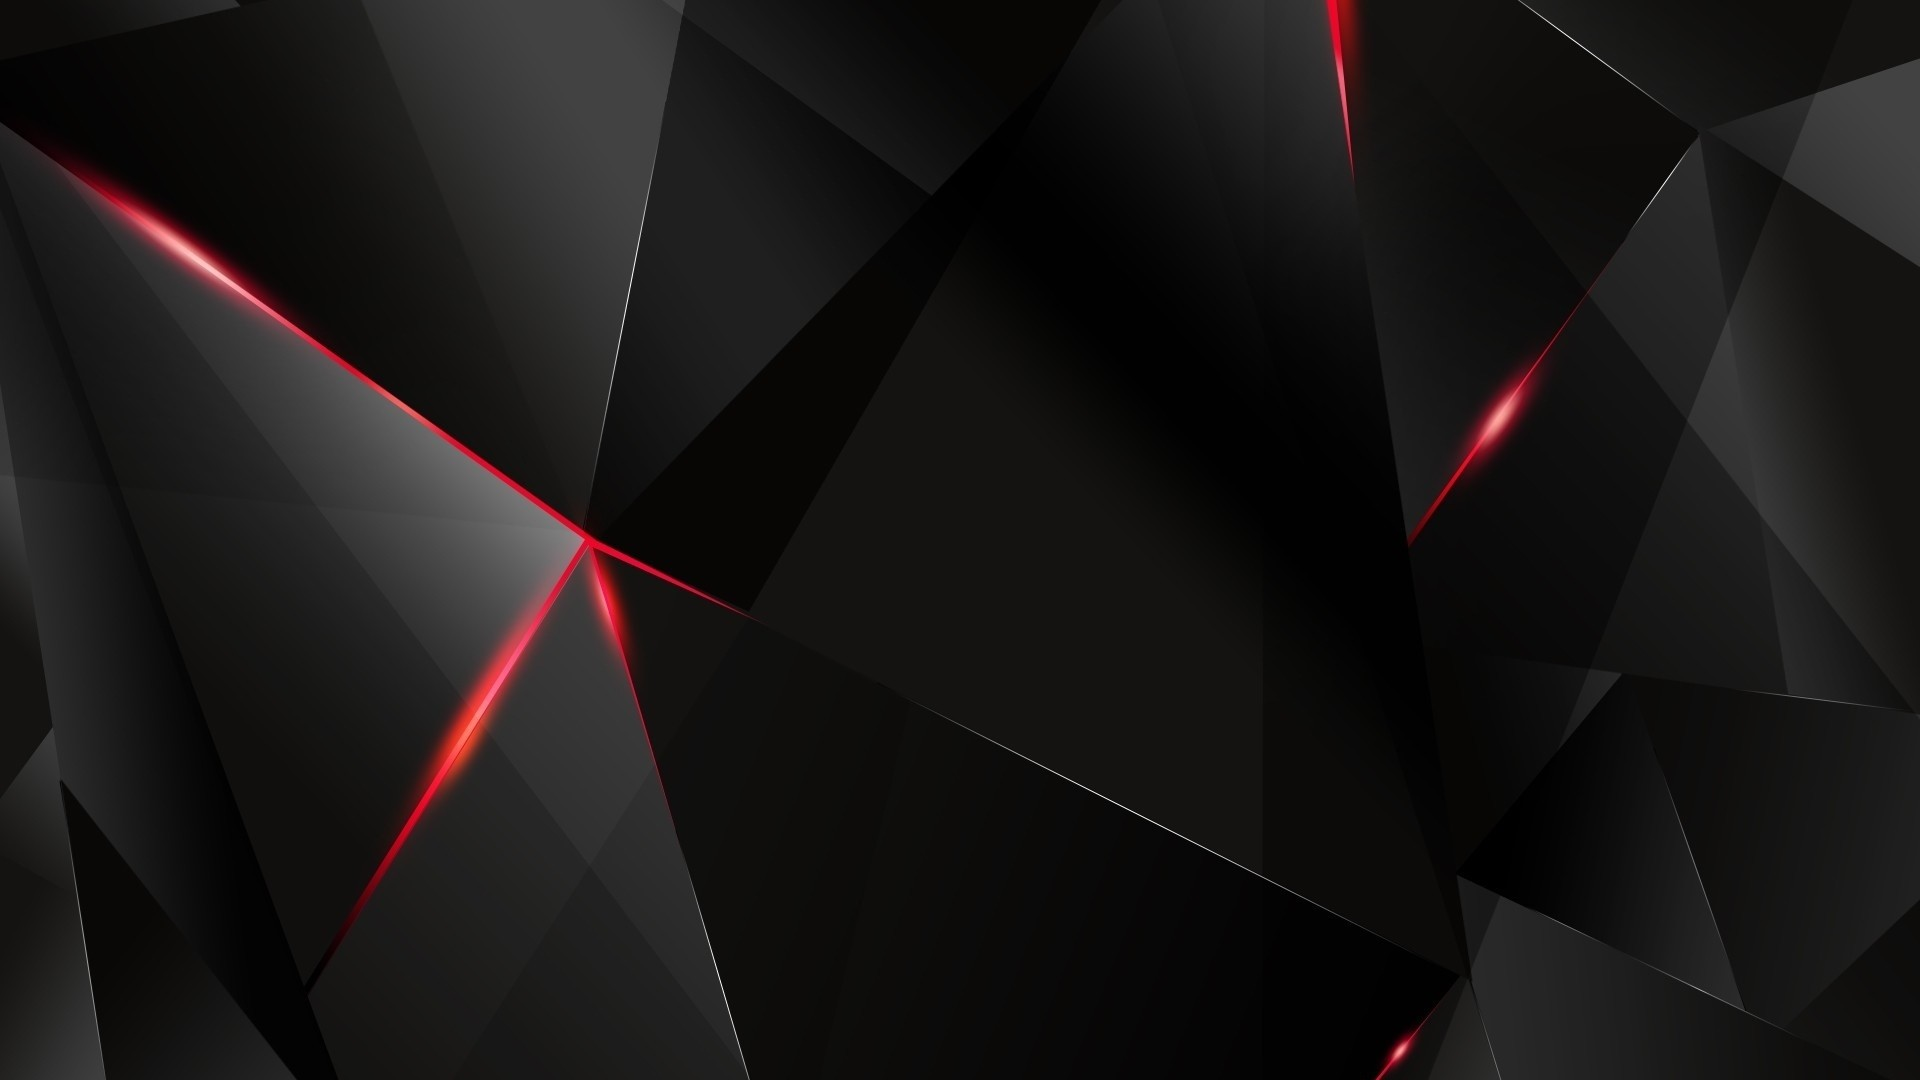 Dark red abstract wallpaper 67 images - Black red abstract wallpaper ...